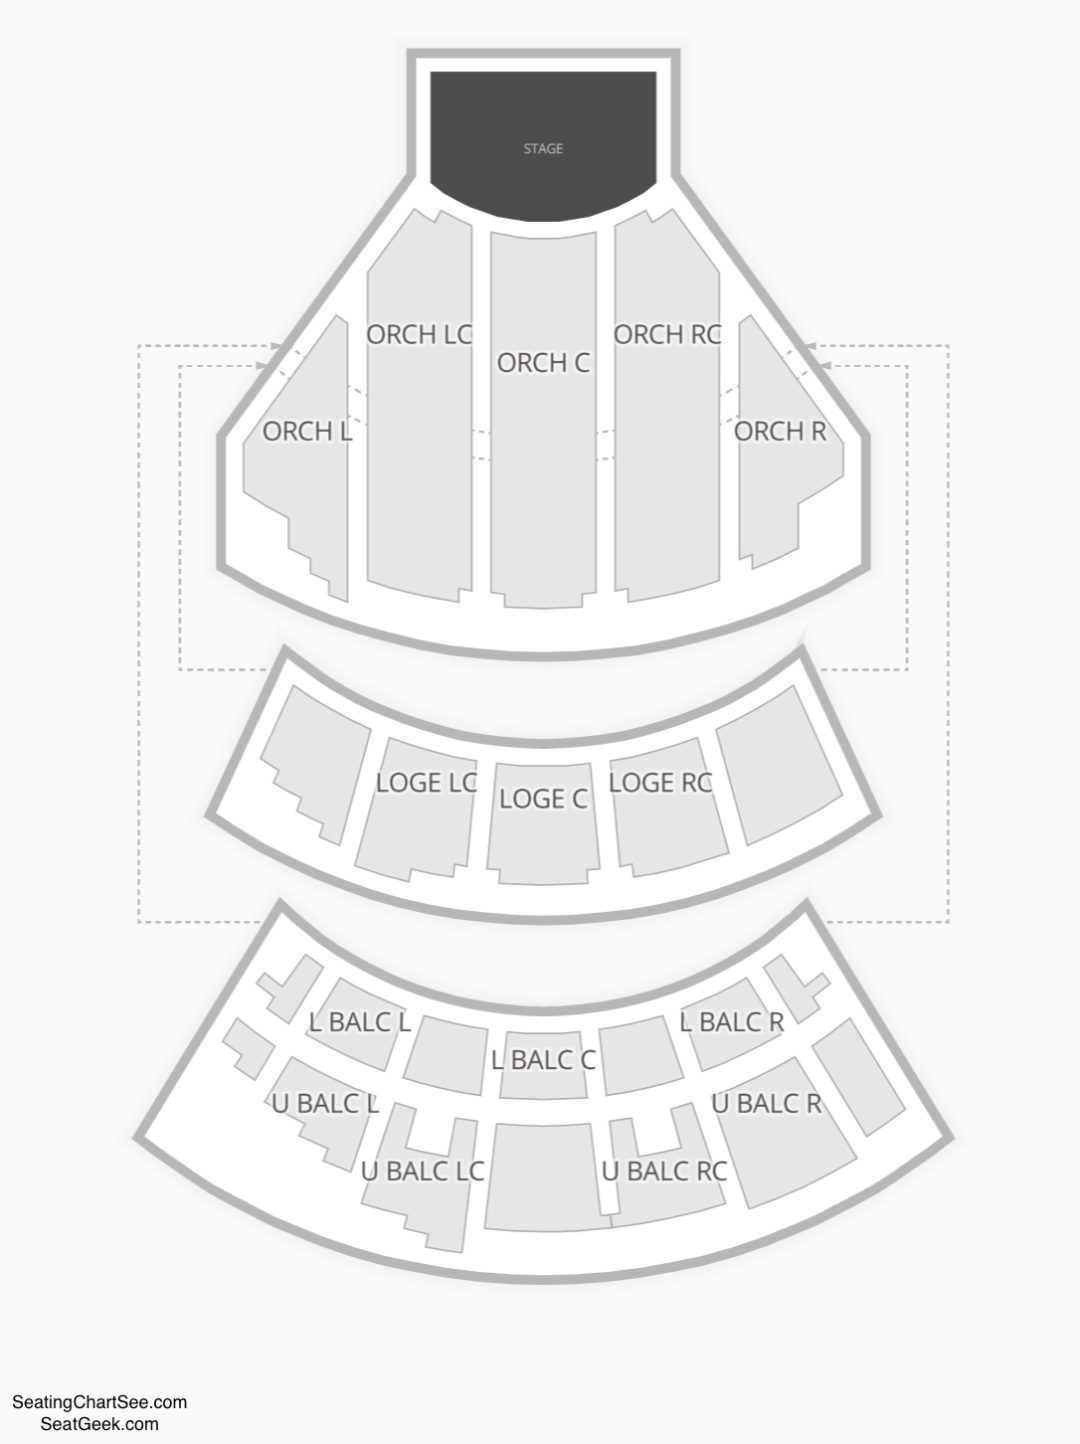 Beacon theater seating chart seating charts tickets